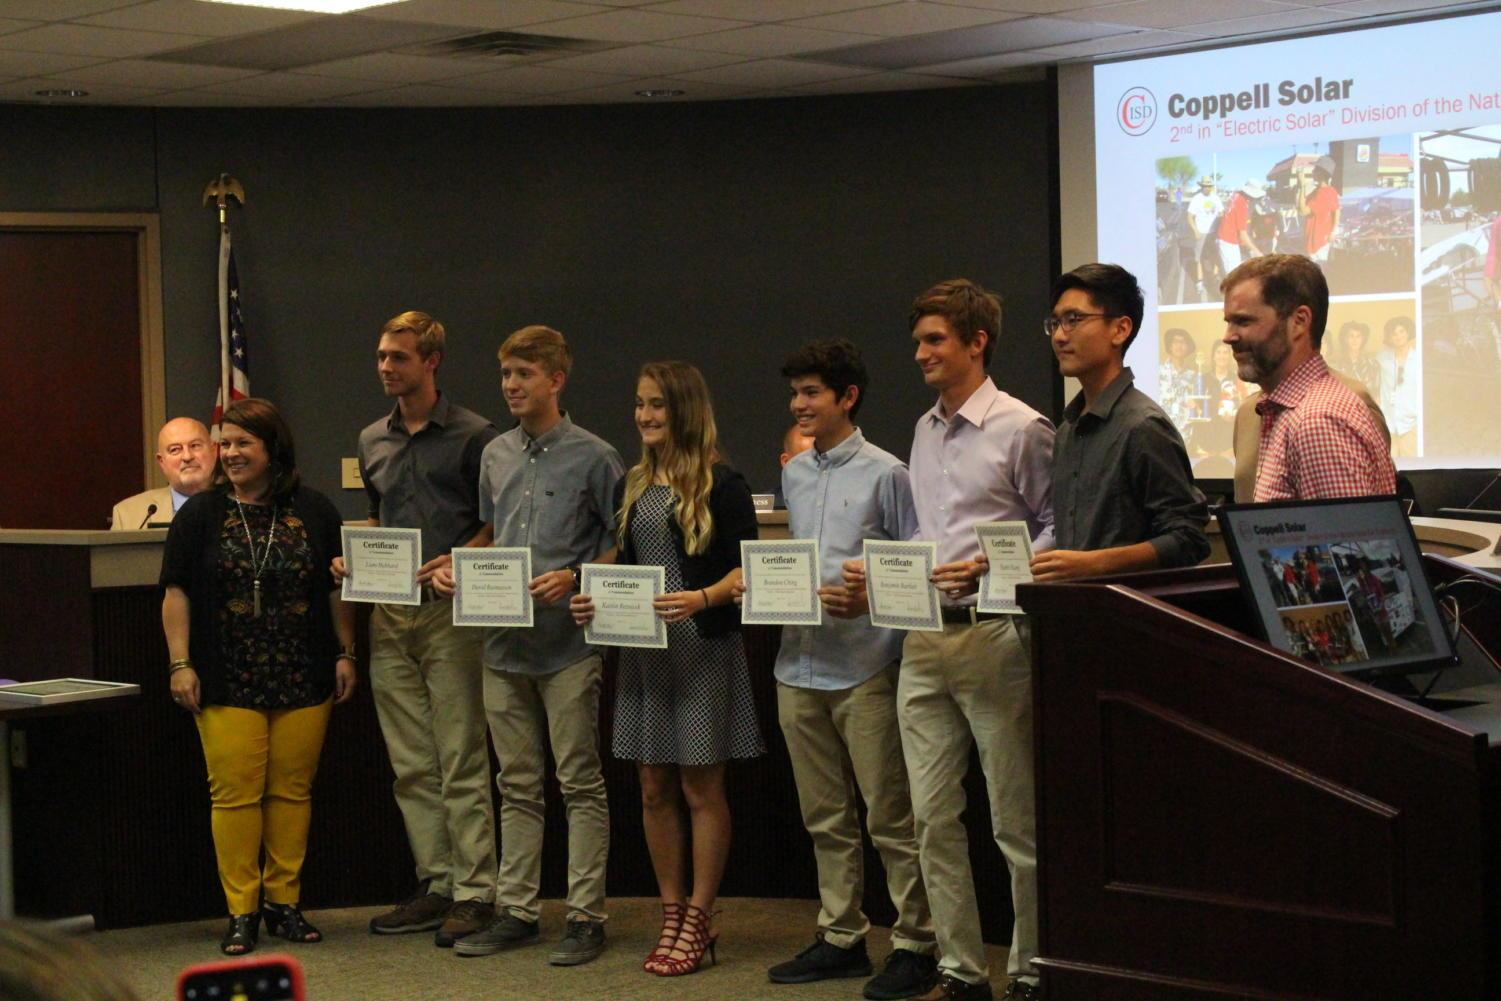 Coppell High School Solar team smiles after getting recognized at the CISD board meeting on Monday in the Vonita White Administration Building. The Solar team participated in 2018 National Solar Car Challenge, and Coppell seized second place in the electric car division.